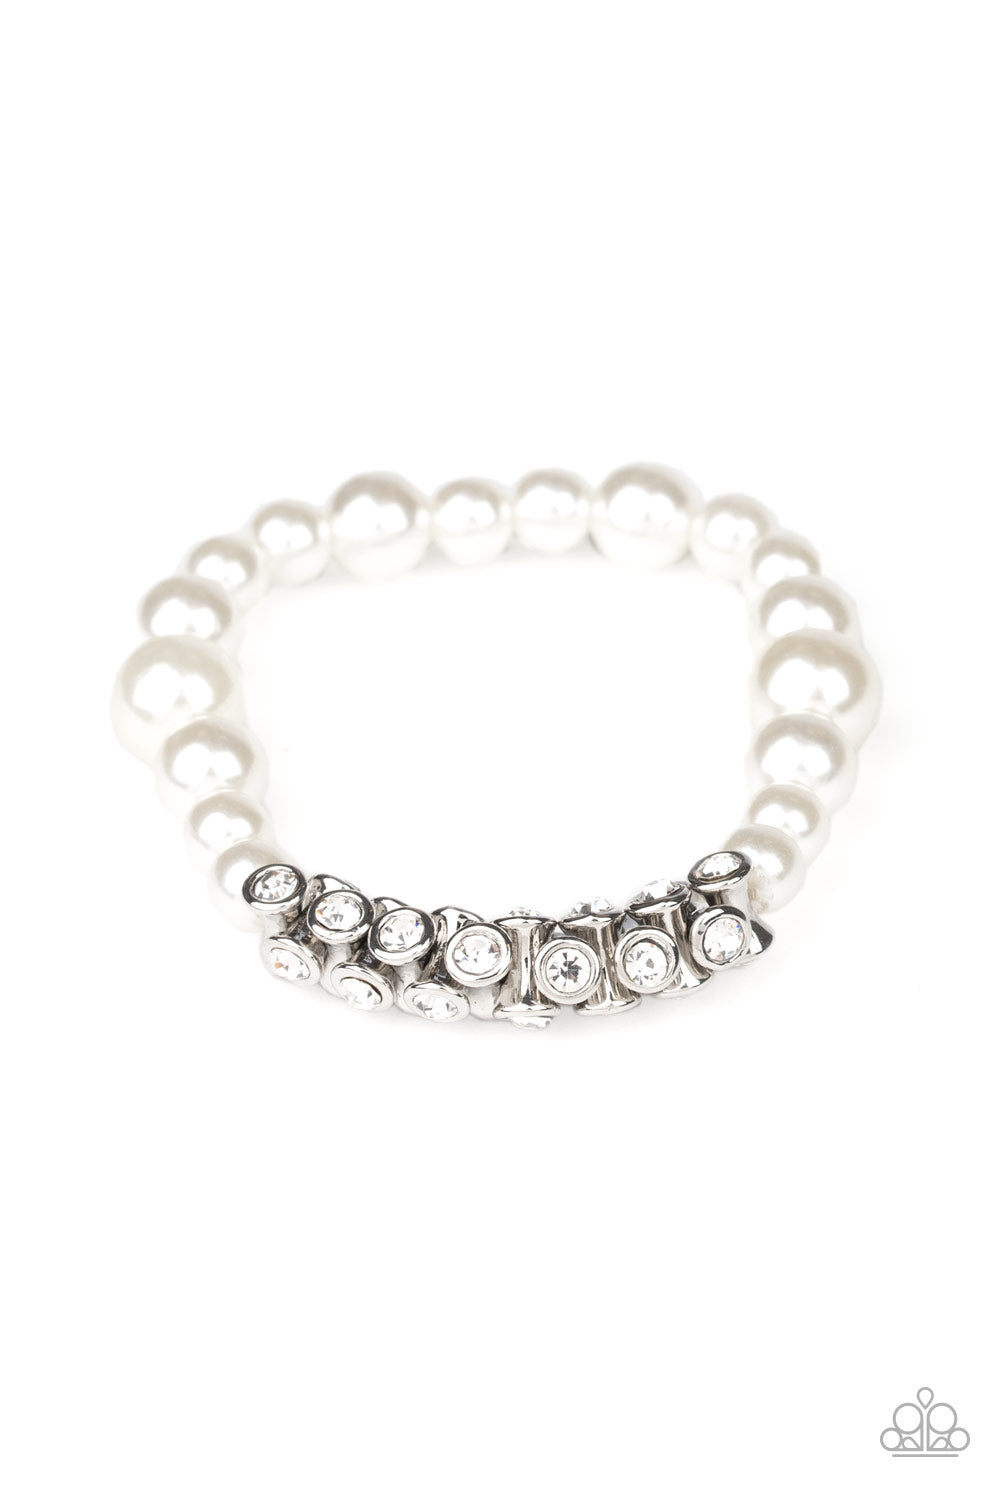 Paparazzi Bracelet ~ Traffic-Stopping Sparkle - White